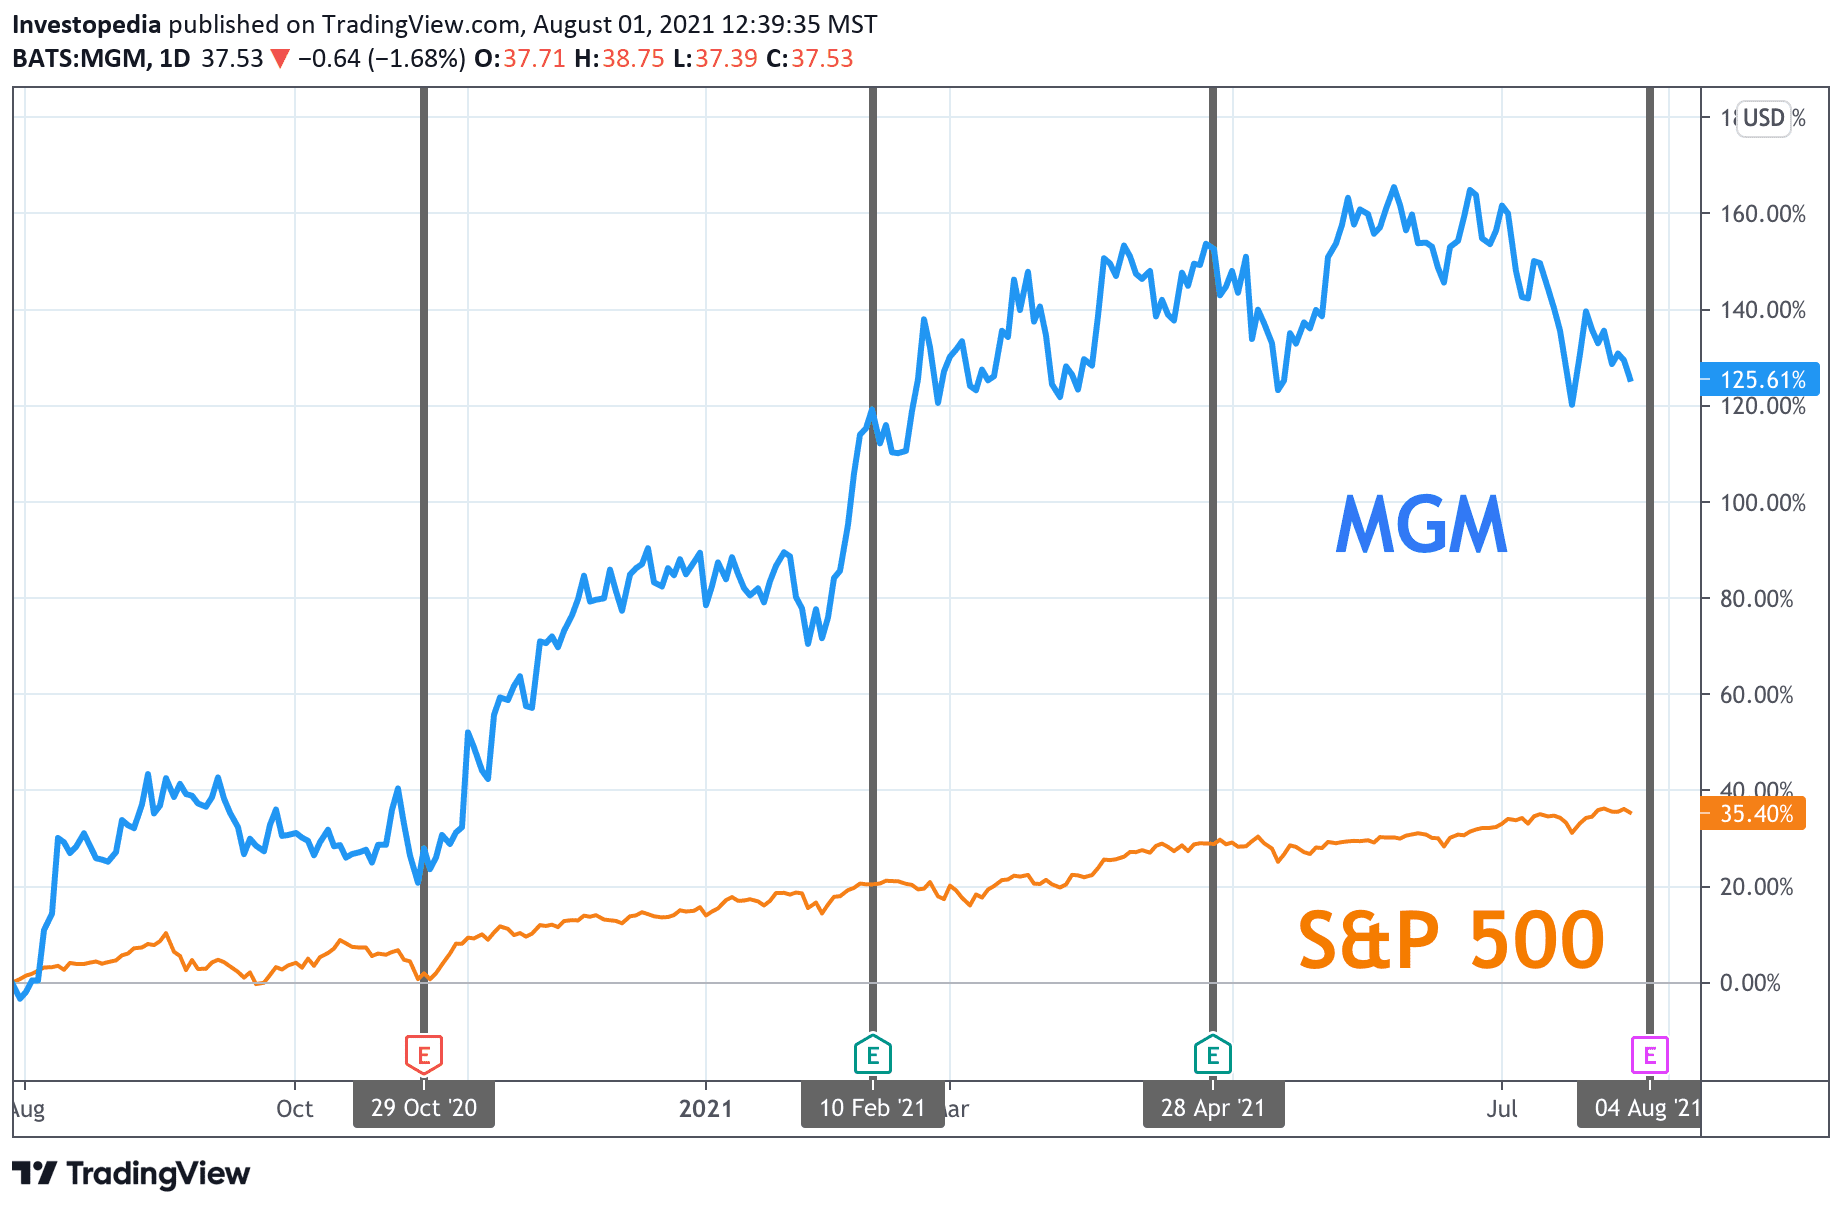 One Year Total Return for S&P 500 and MGM